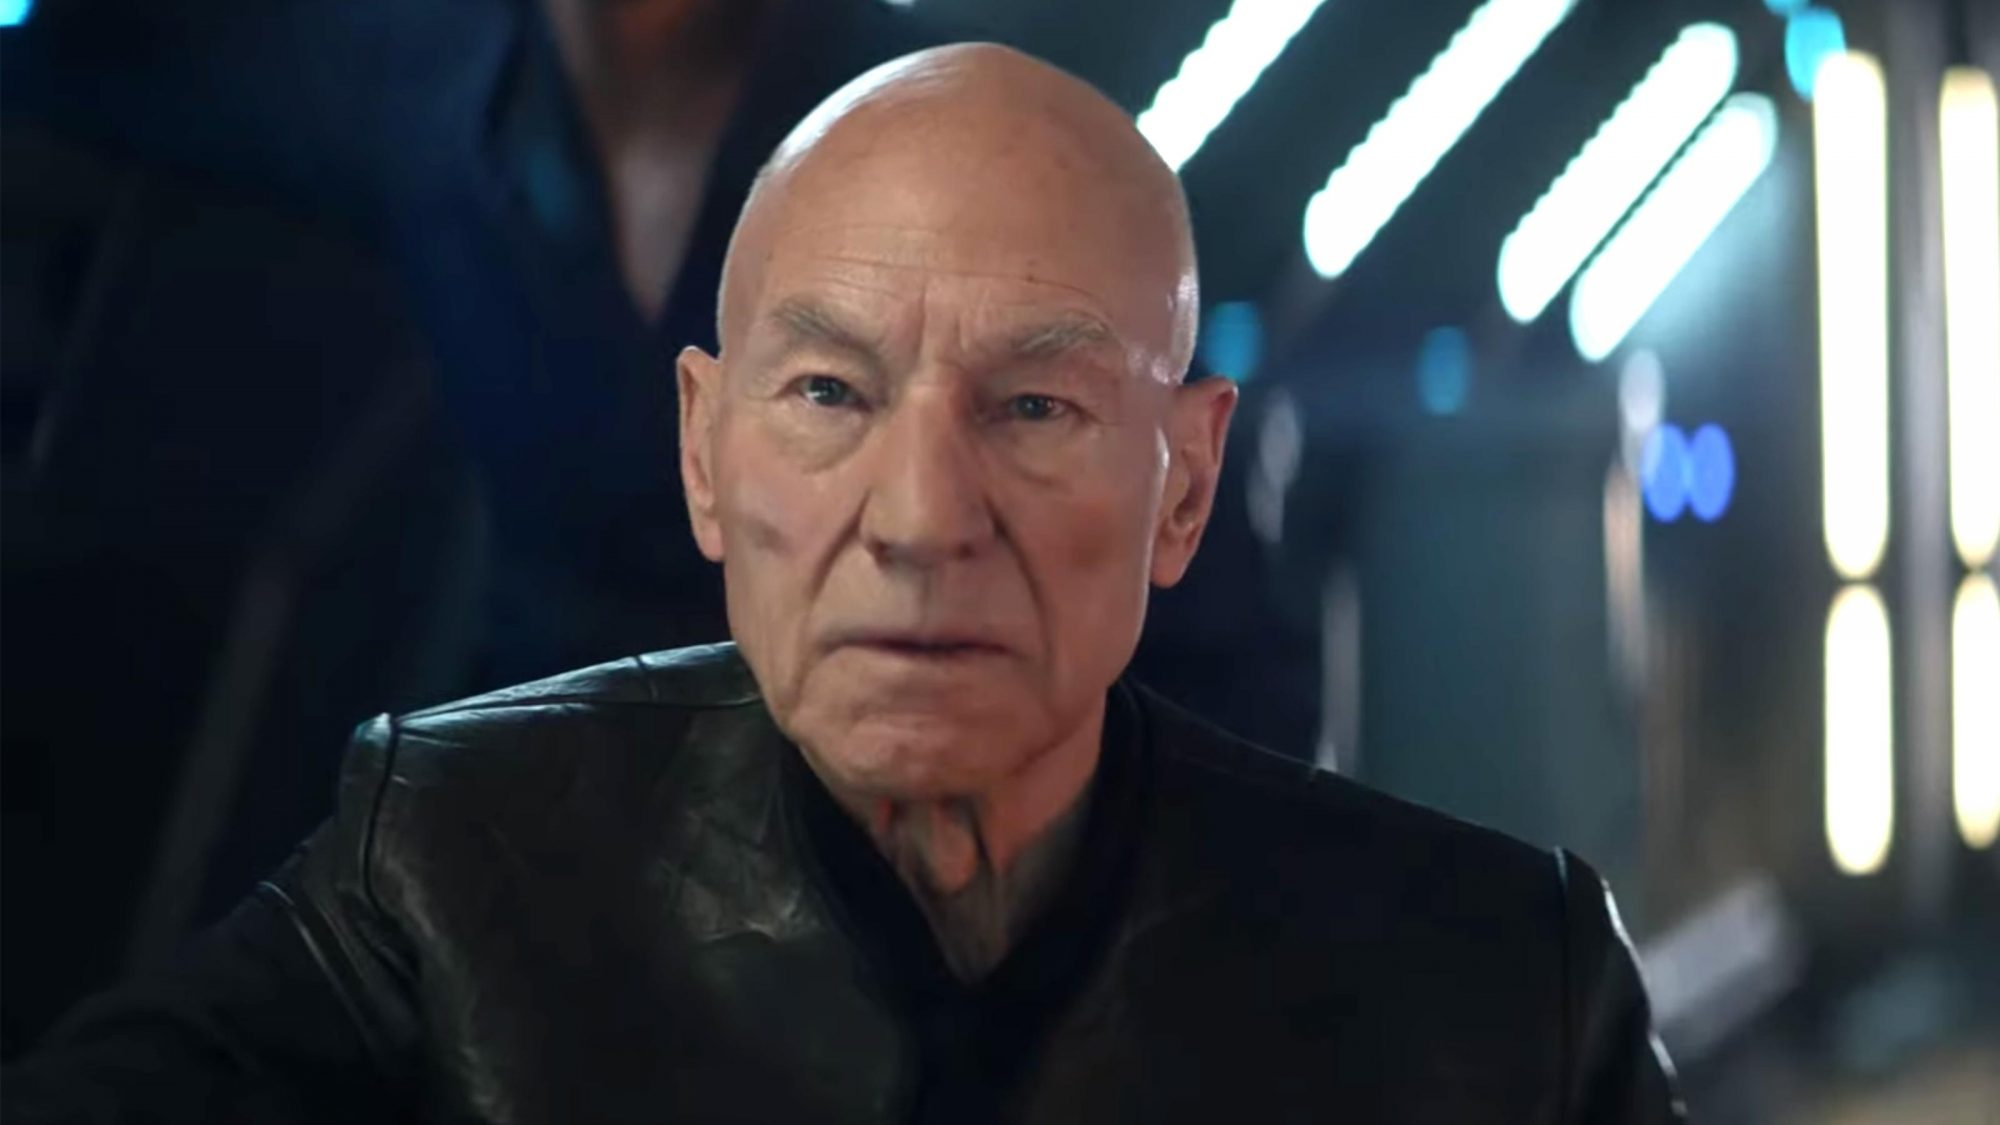 Star Trek: Picard | SDCC Trailer - Sir Patrick Stewart Returns (screen grab) Patrick Stewart https://www.youtube.com/watch?v=KbXy0f0aCN0 CR: CBS